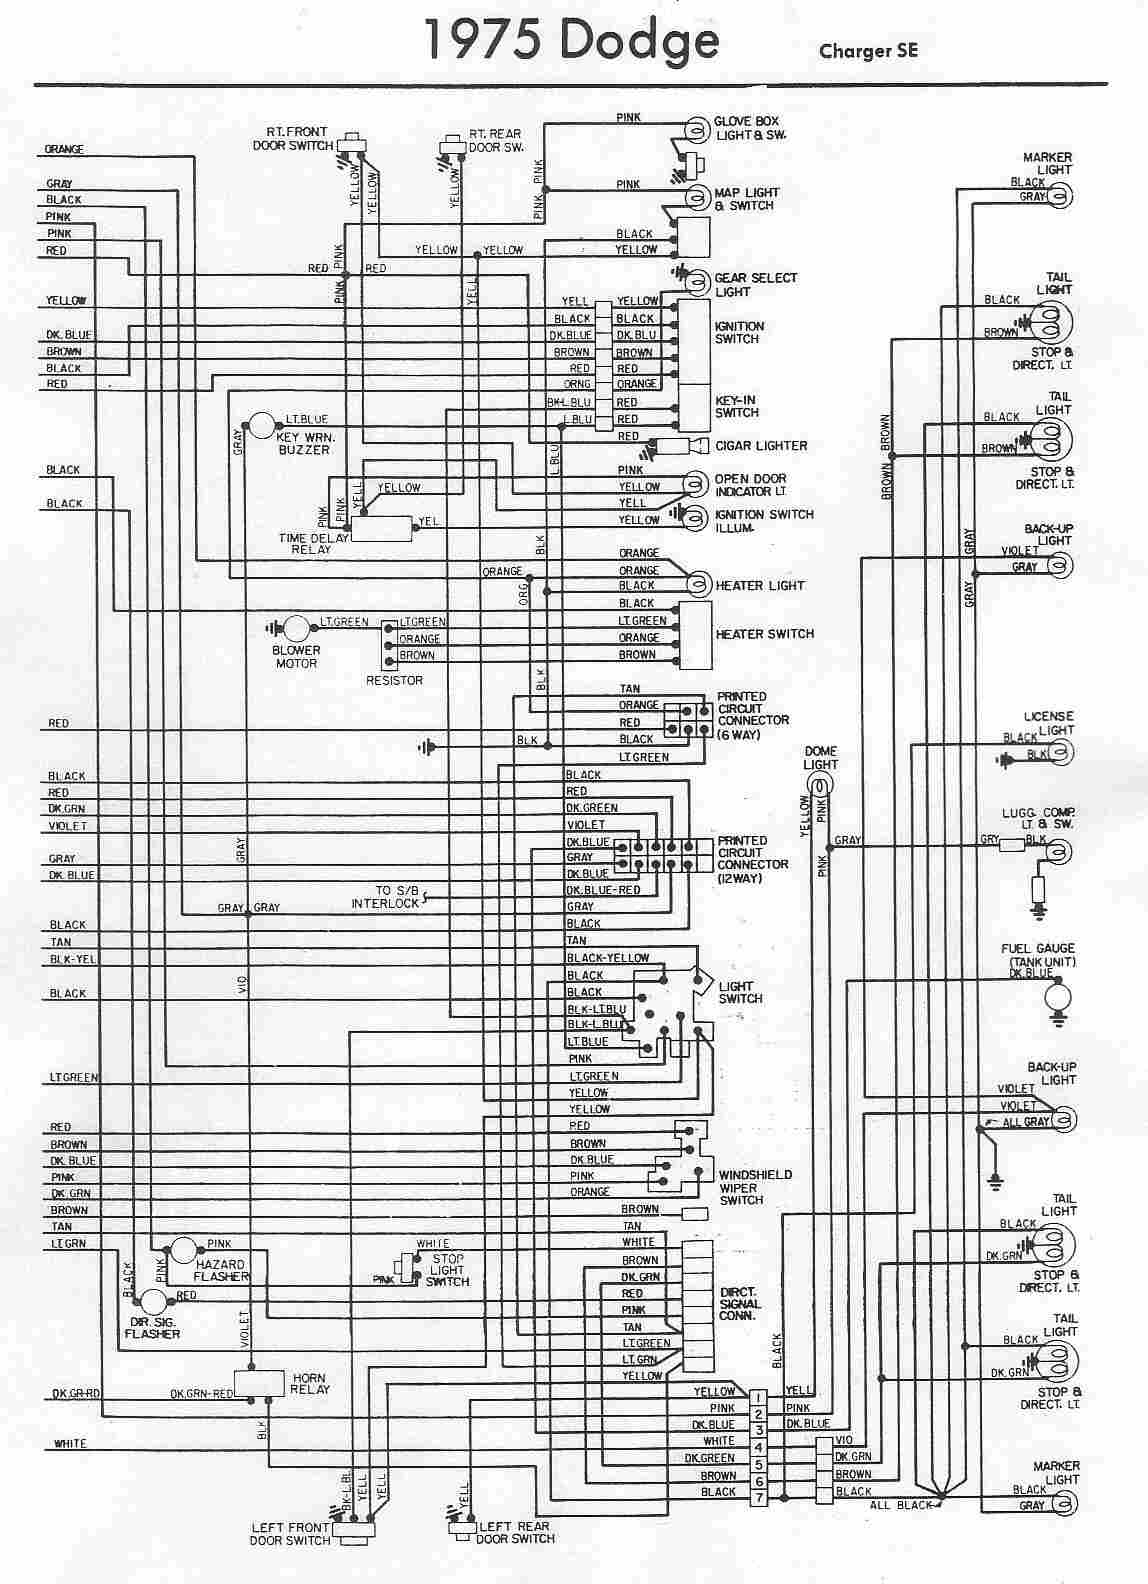 1989 Dodge 350 Van Wiring Diagram Worksheet And Caravan 2006 1987 D100 Online Schematics Rh Delvato Co Grand